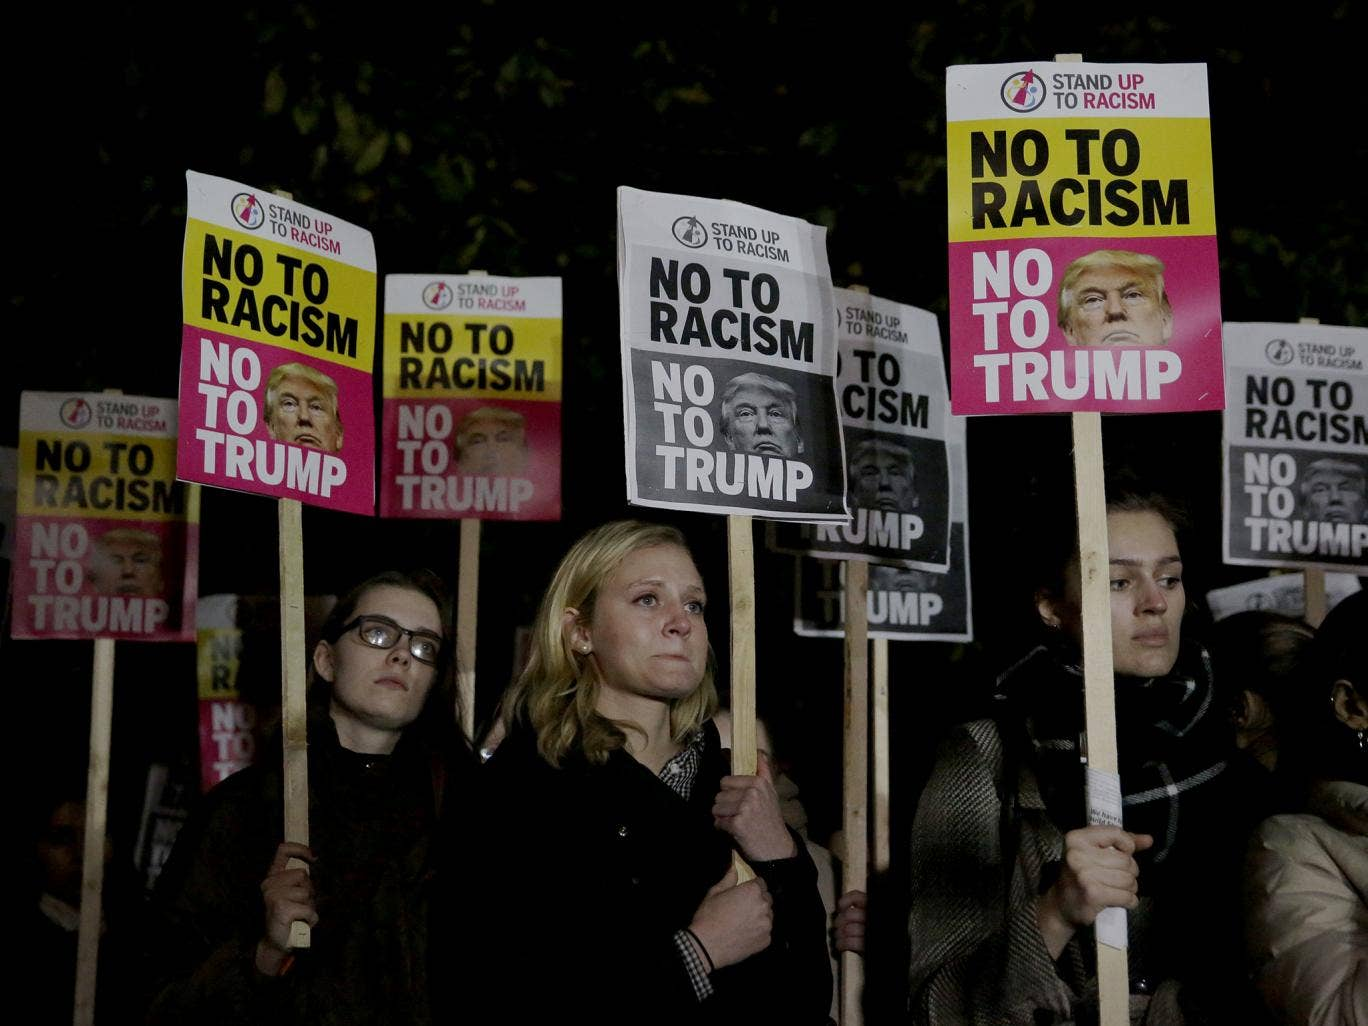 People hold placards as they take part in an anti-racism protest against President-elect Donald Trump winning the American election, outside the U.S. embassy in London